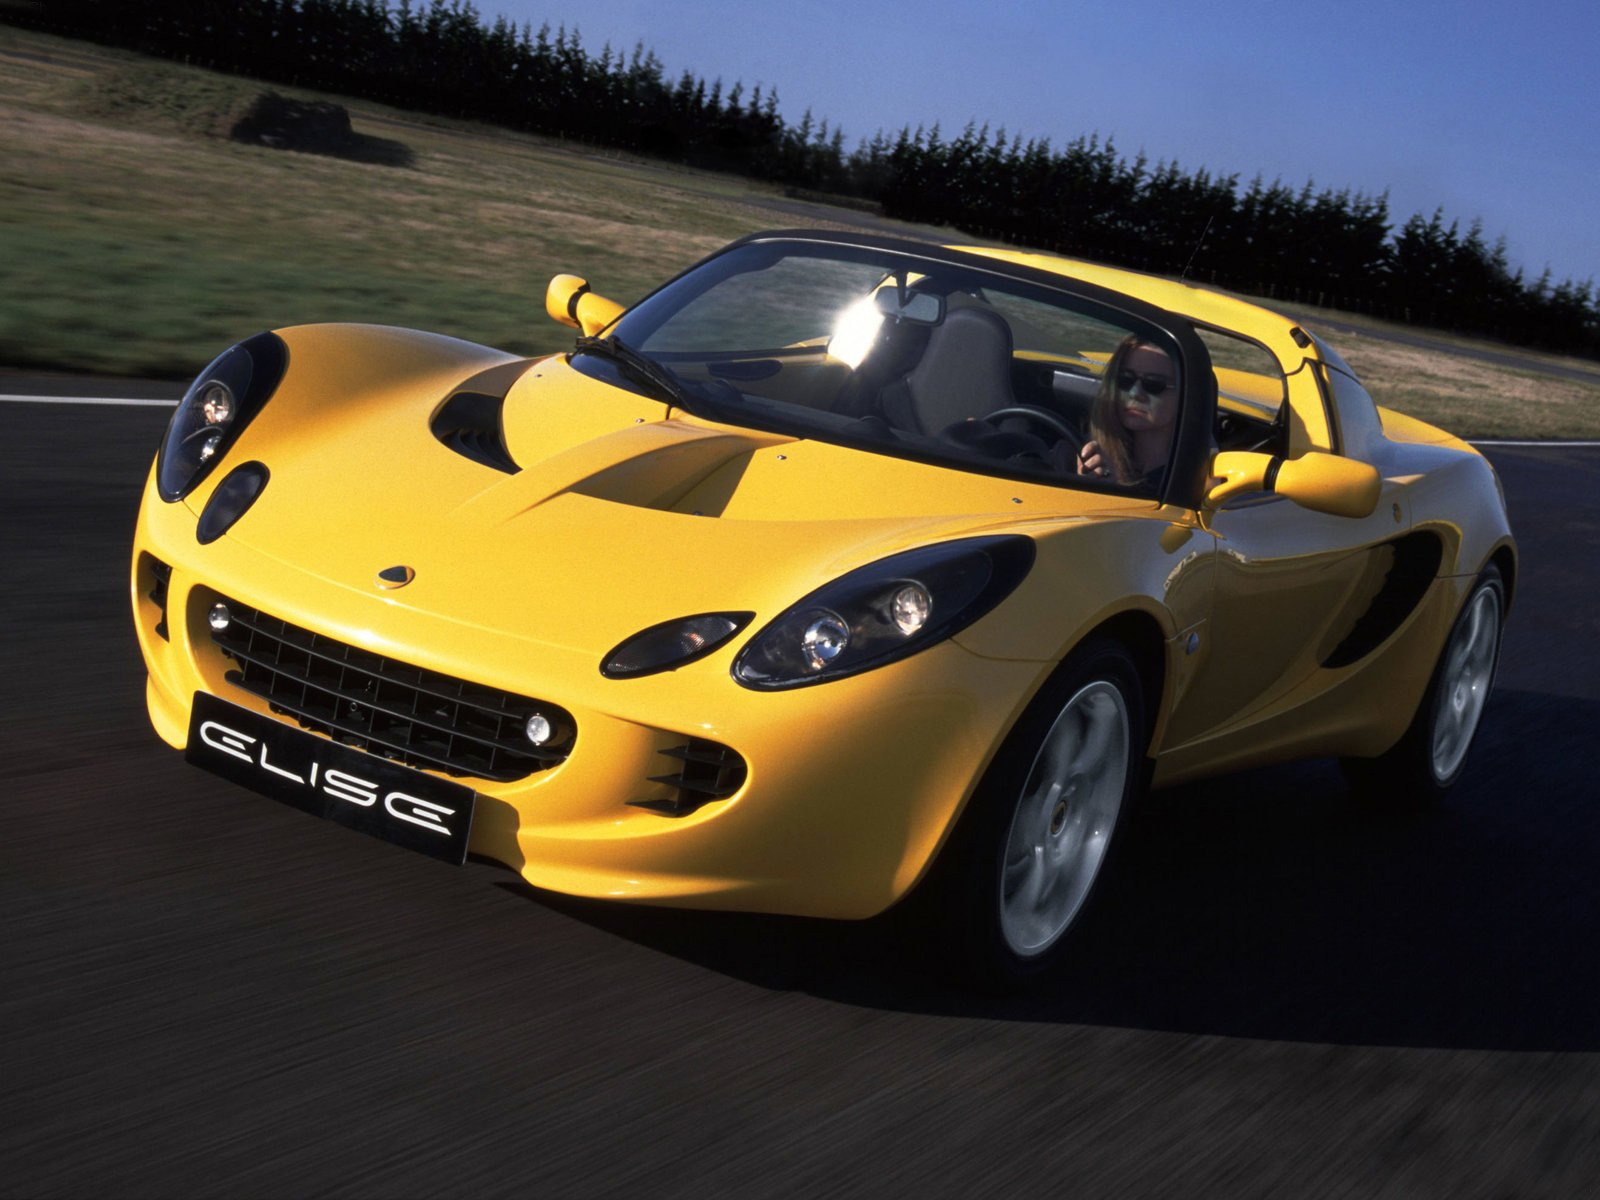 New 2002 Lotus Elise Lotus Car Picture On This Month